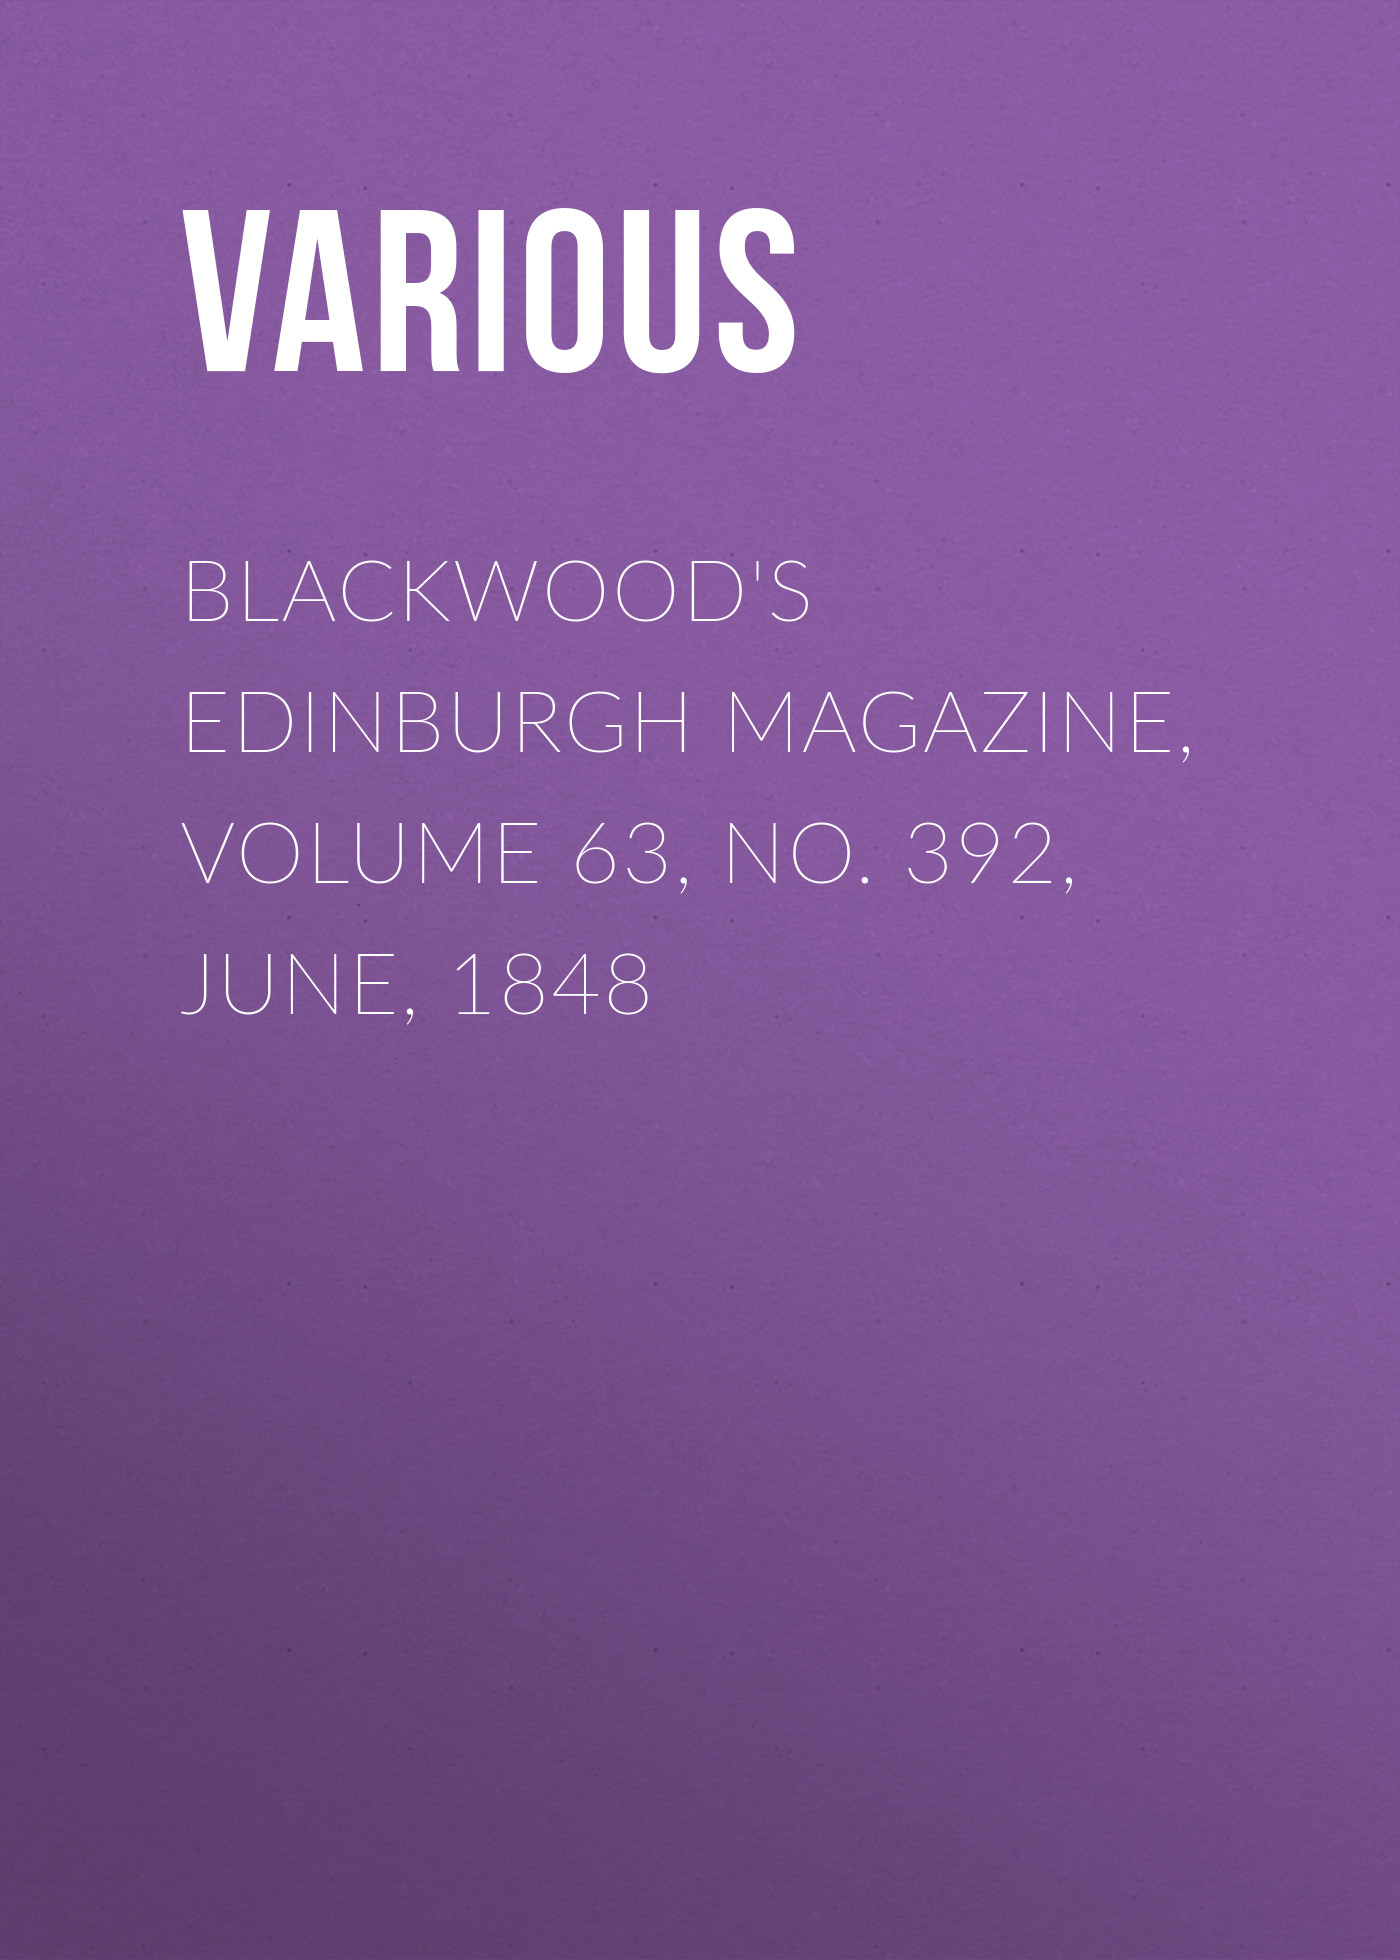 лучшая цена Various Blackwood's Edinburgh Magazine, Volume 63, No. 392, June, 1848